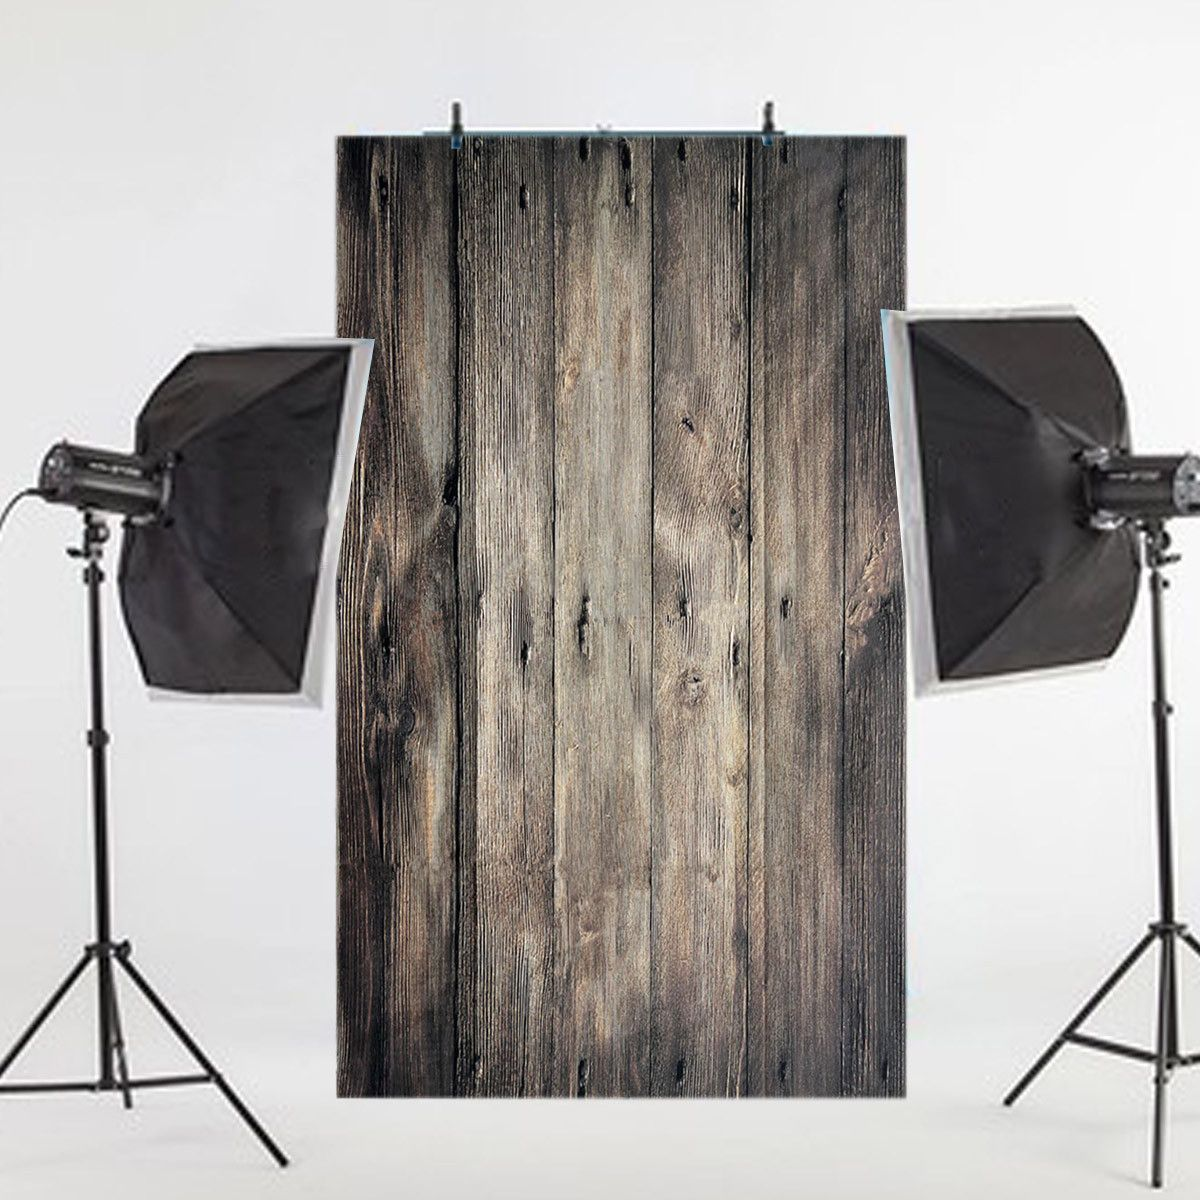 New 3x5FT Vintage Photography Backdrops Wood Vintage Photography Backdrop Backgrounds Studio Wood Background Fotografia wetkiss high heels women pumps genuine leather square heel round toe footwear new rivet lace up platform spring ladies shoes